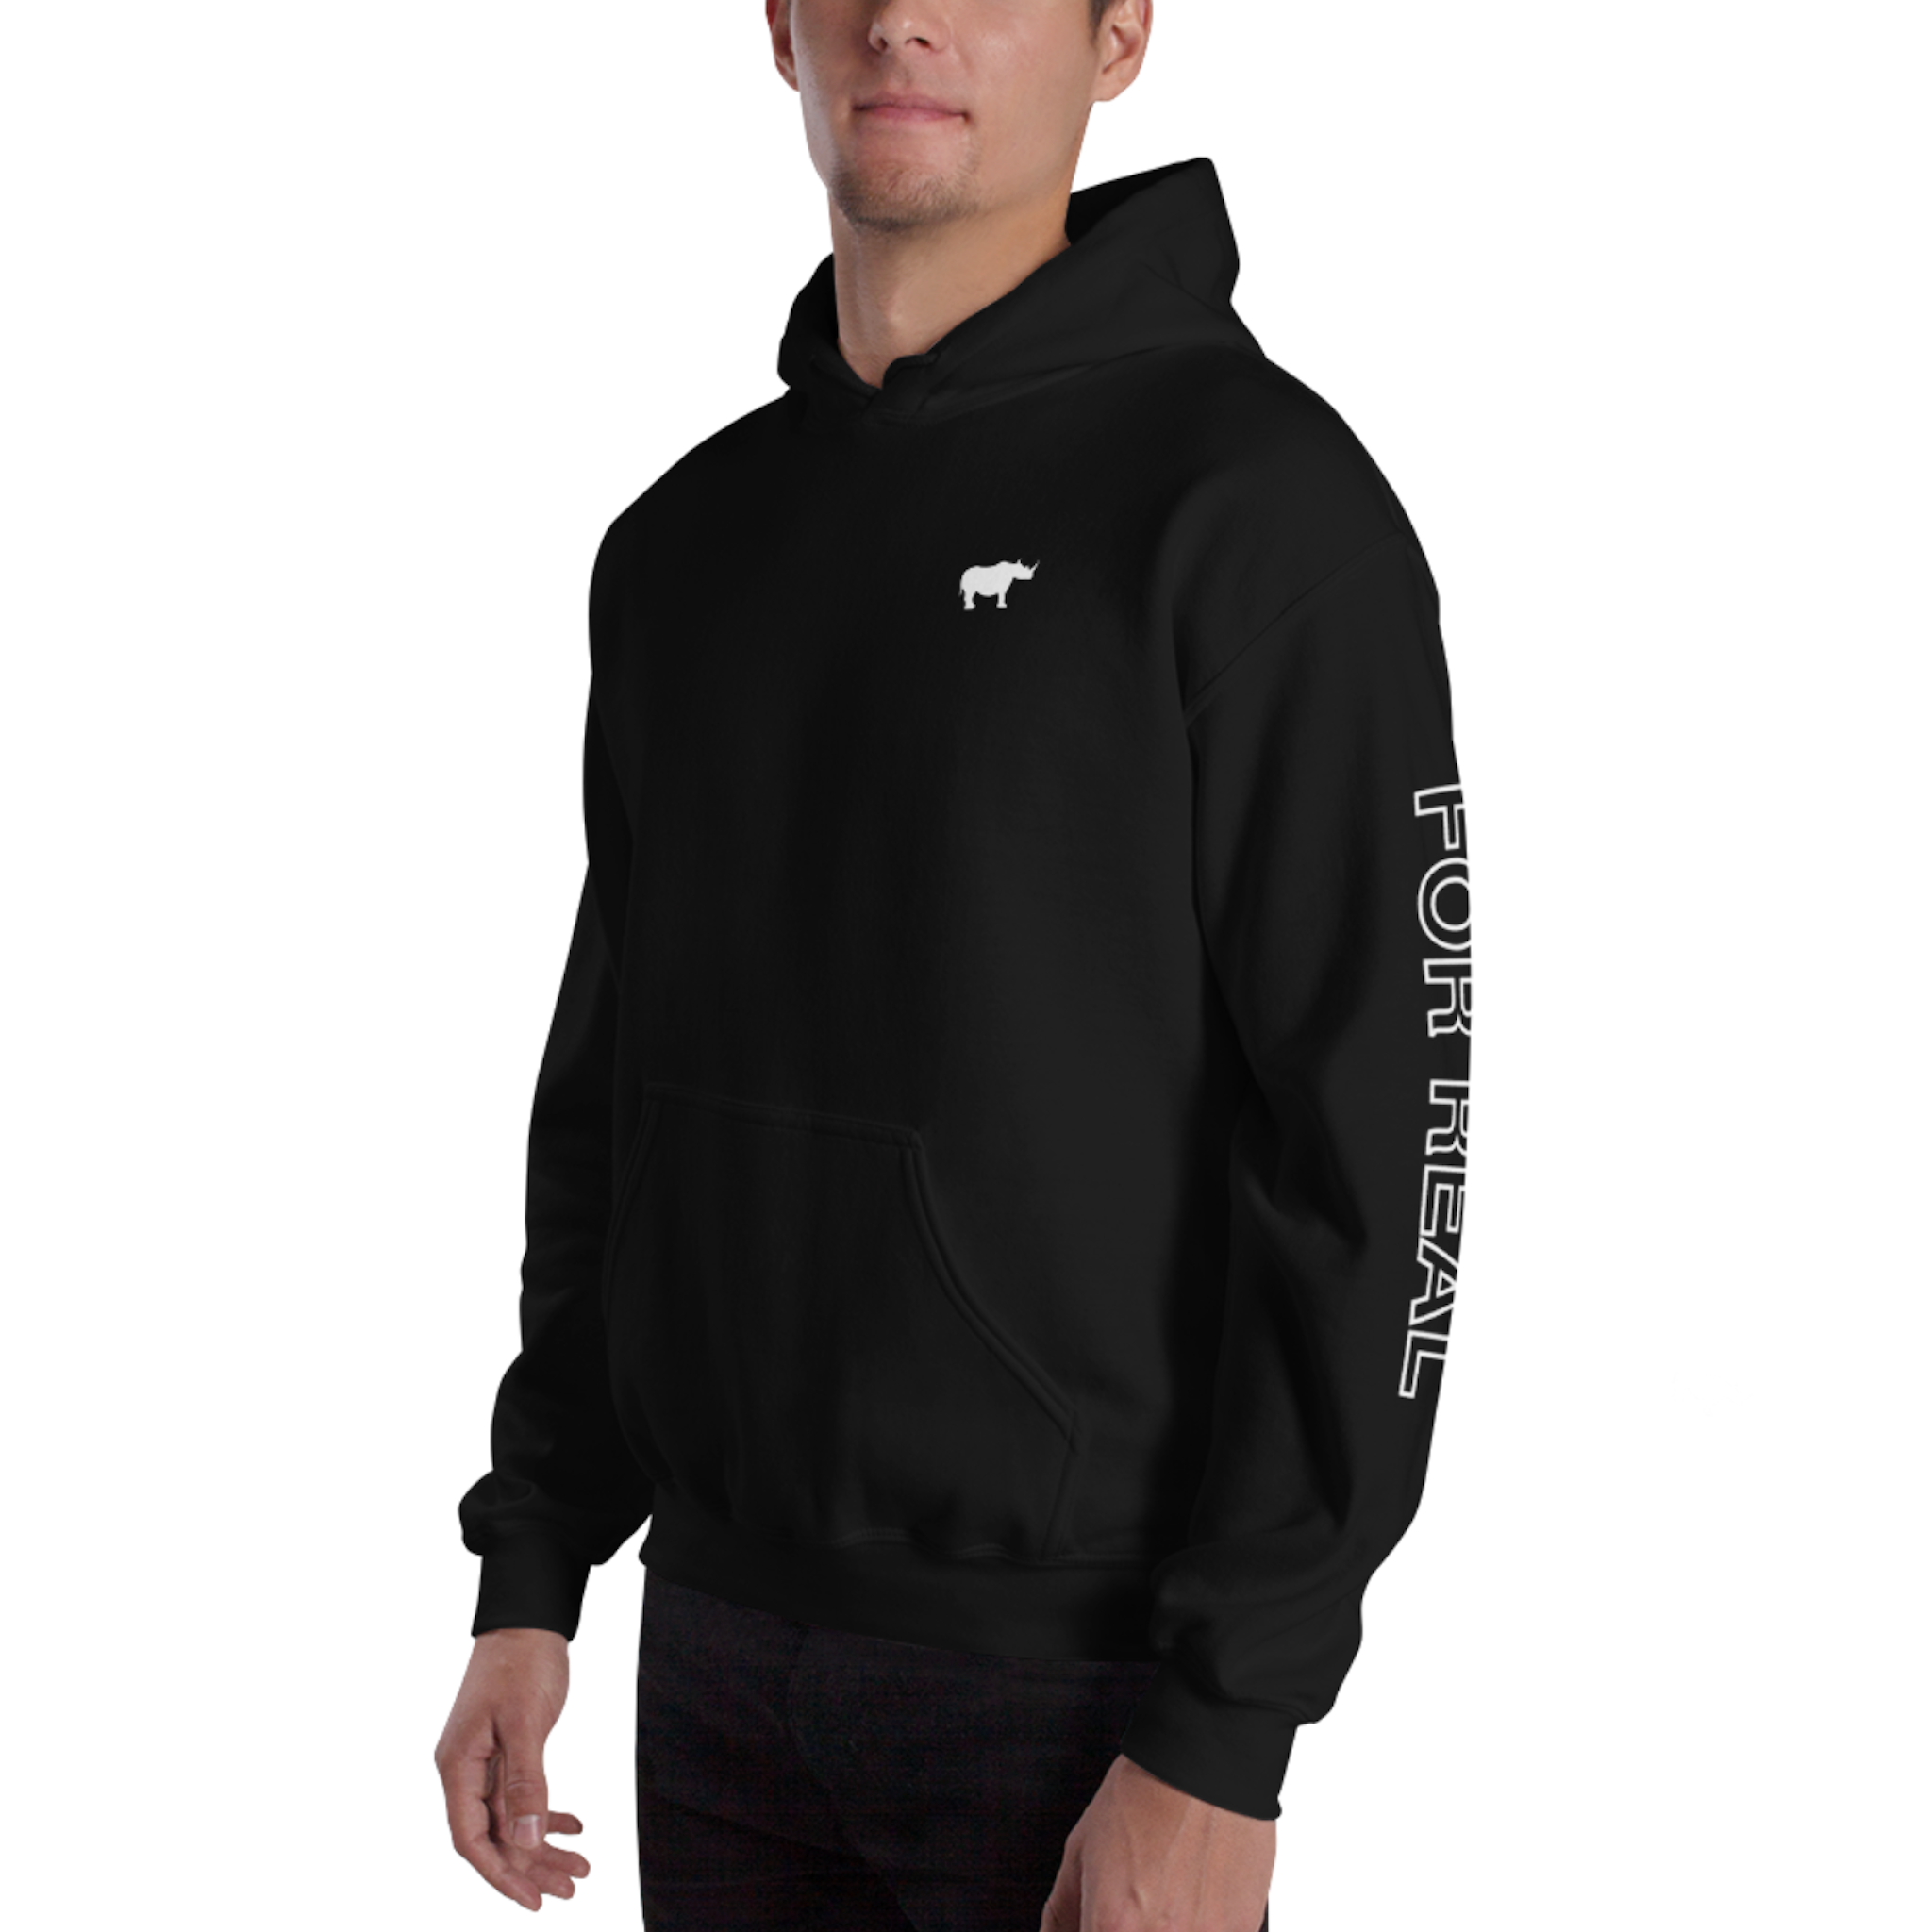 Side hoodie black frontleft man